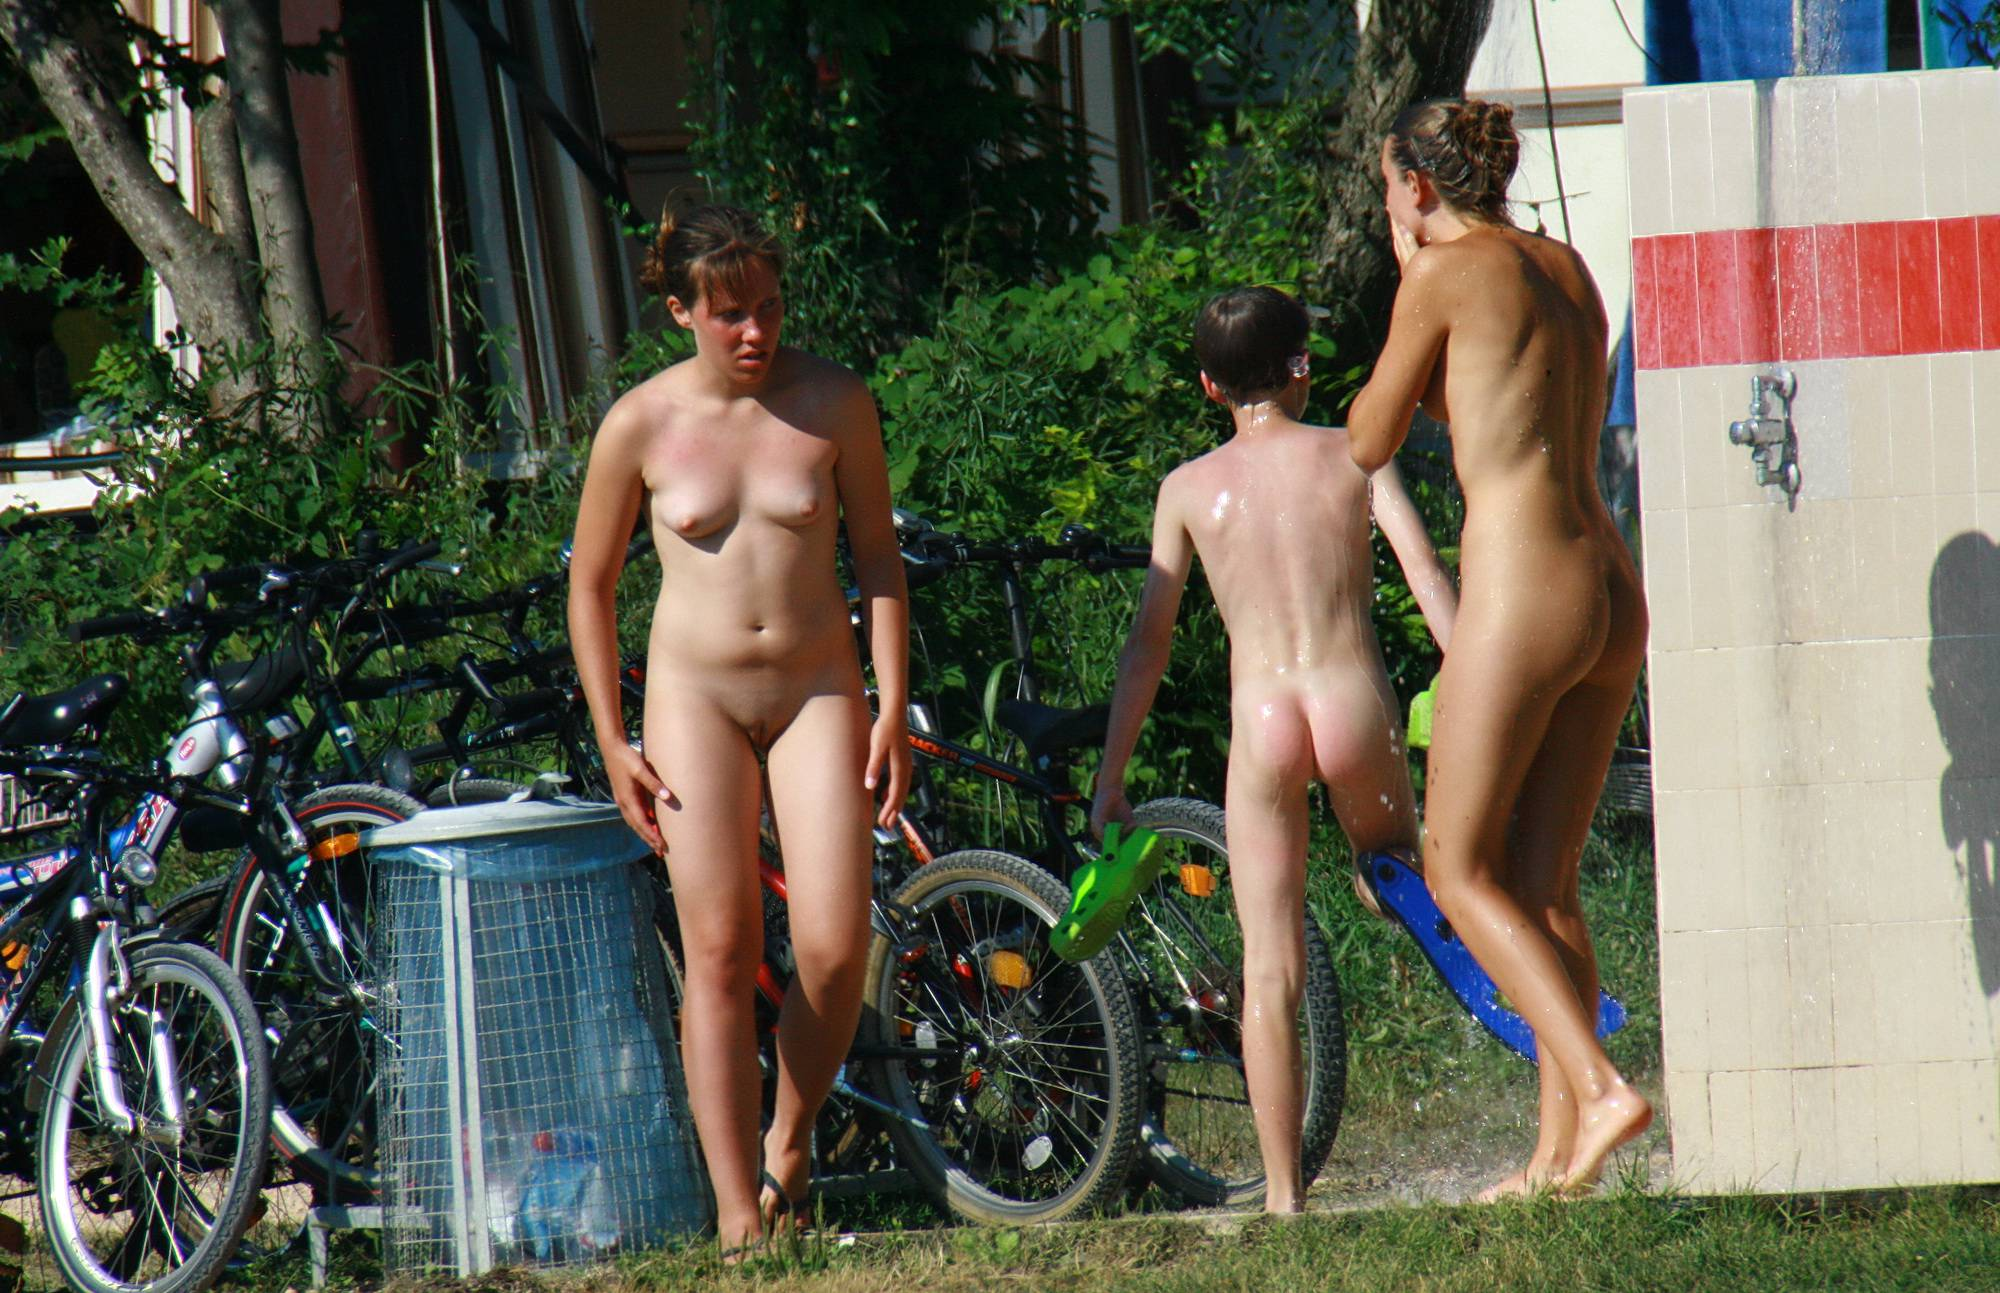 Nudist Photos Summer Day Cool Down - 1